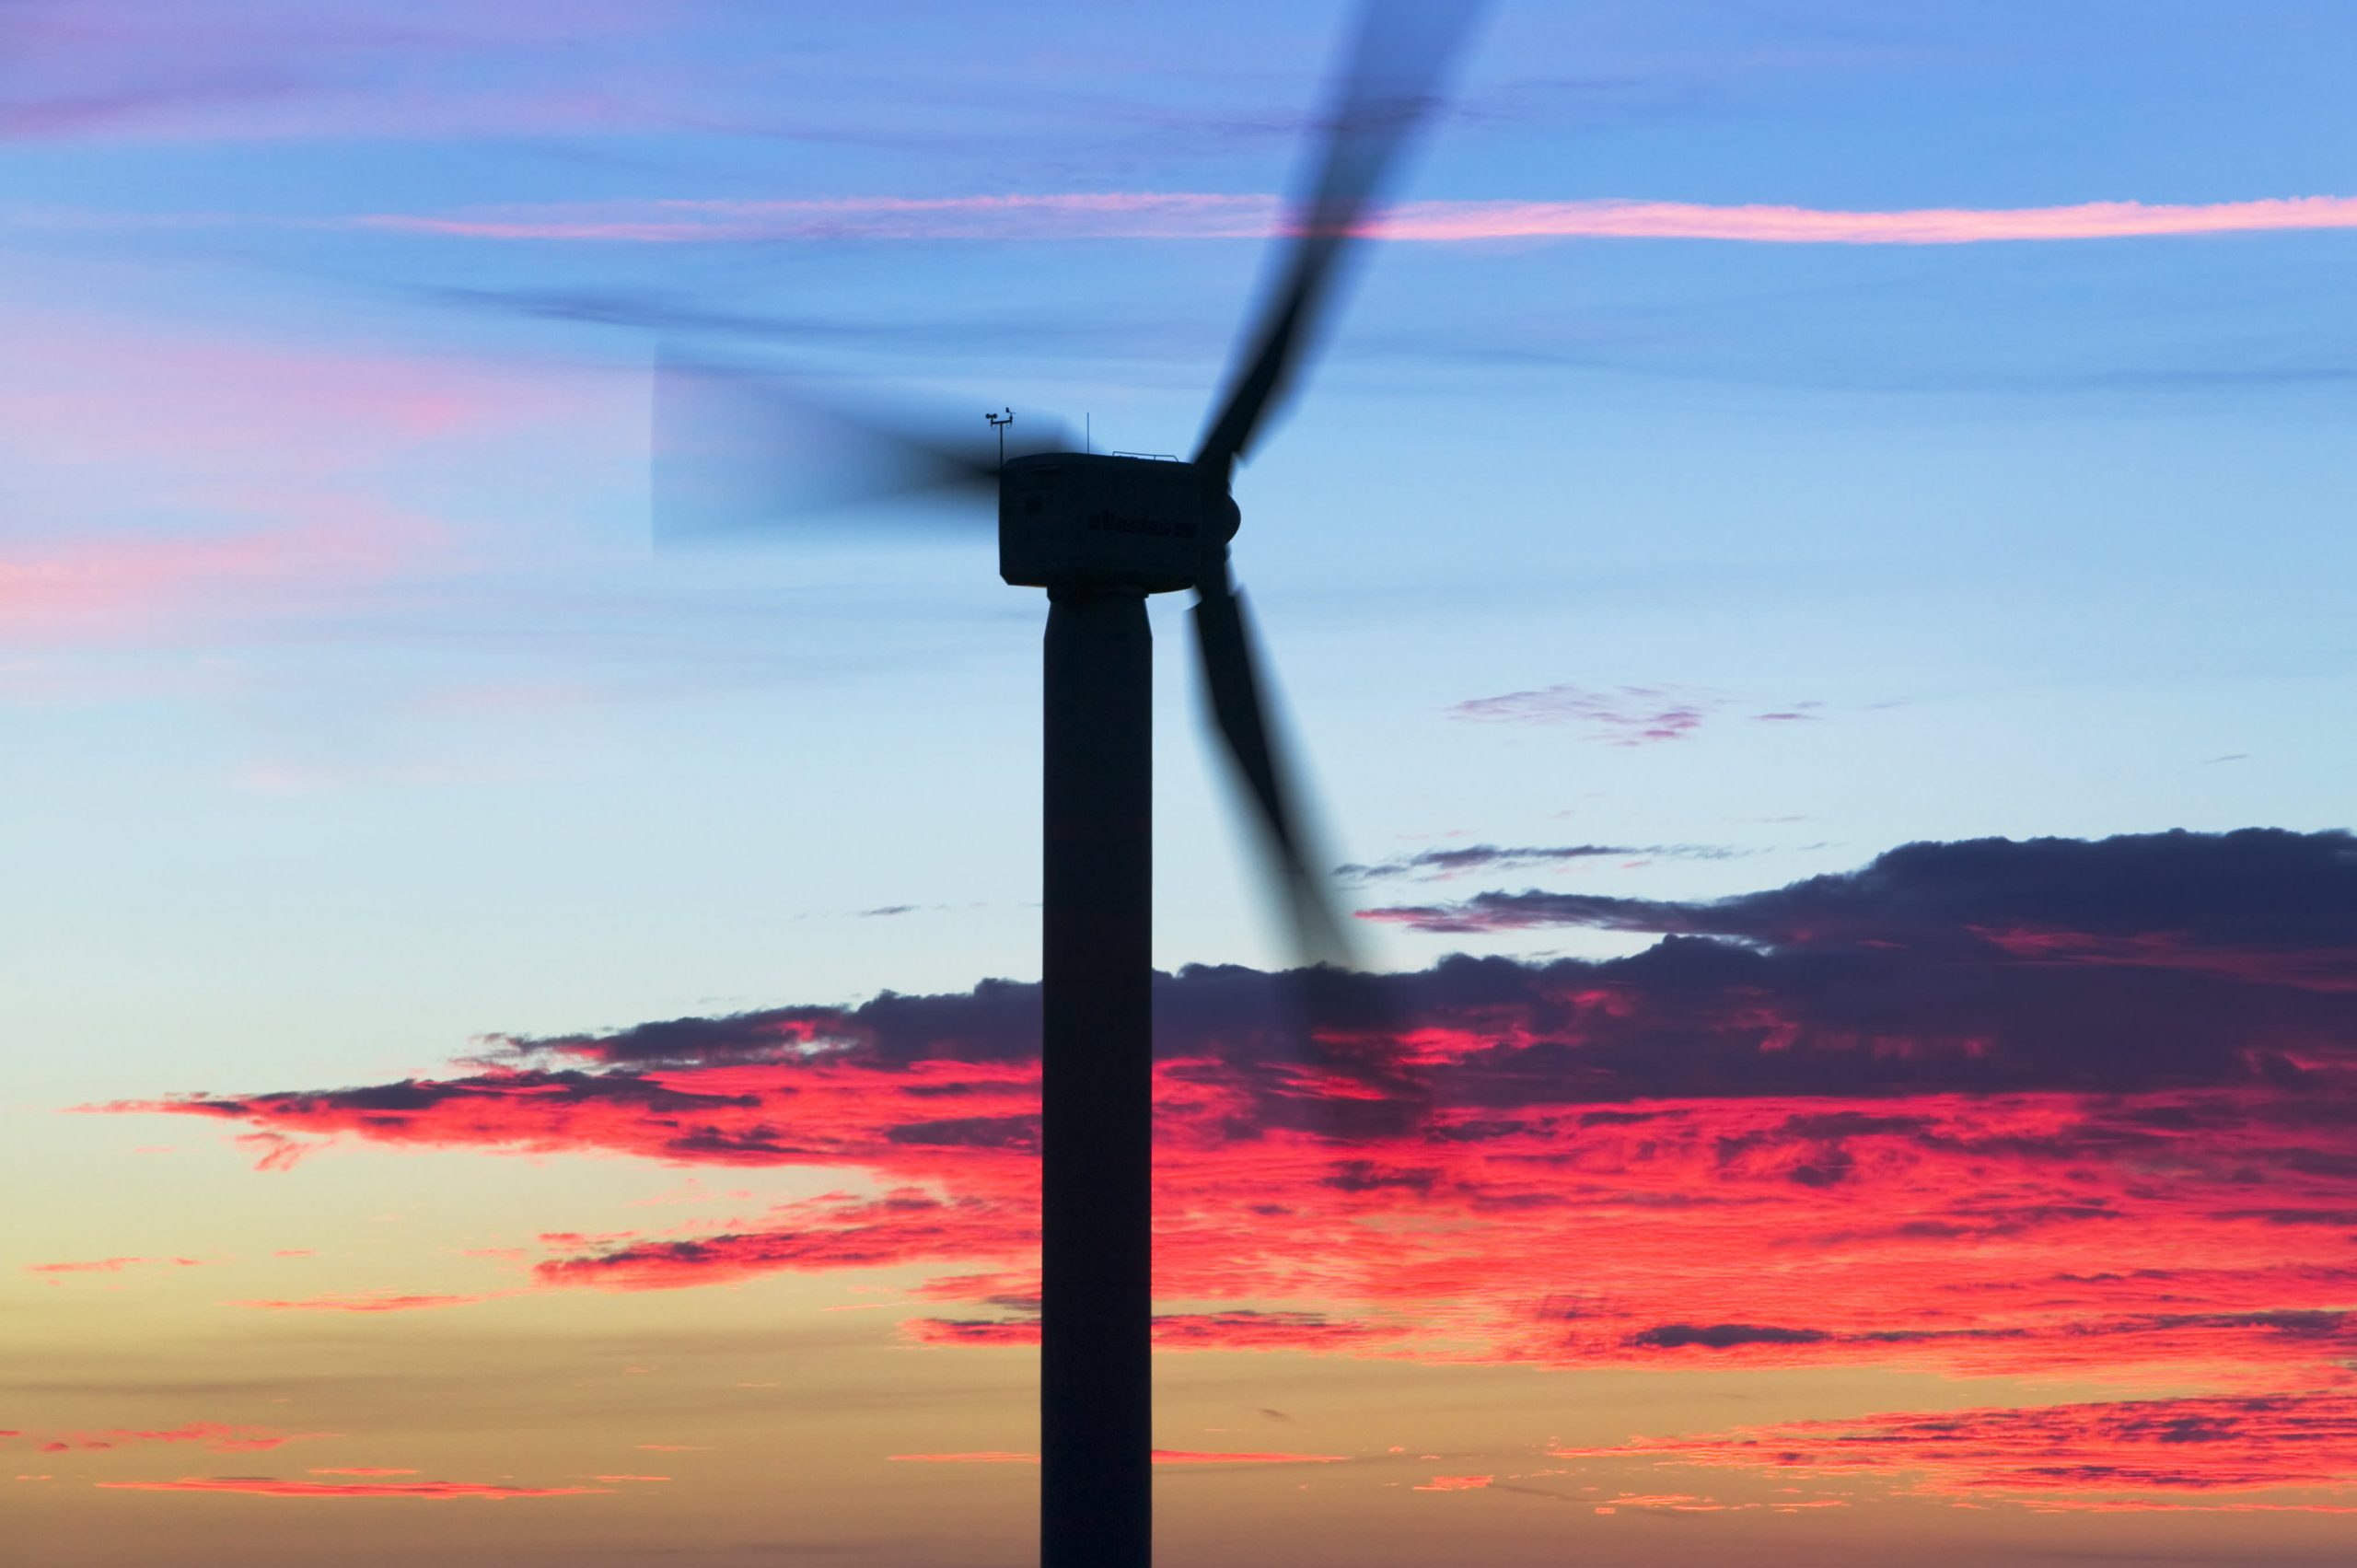 cornwall-home-of-the-g-7-summit-embraces-push-to-renewable-energy